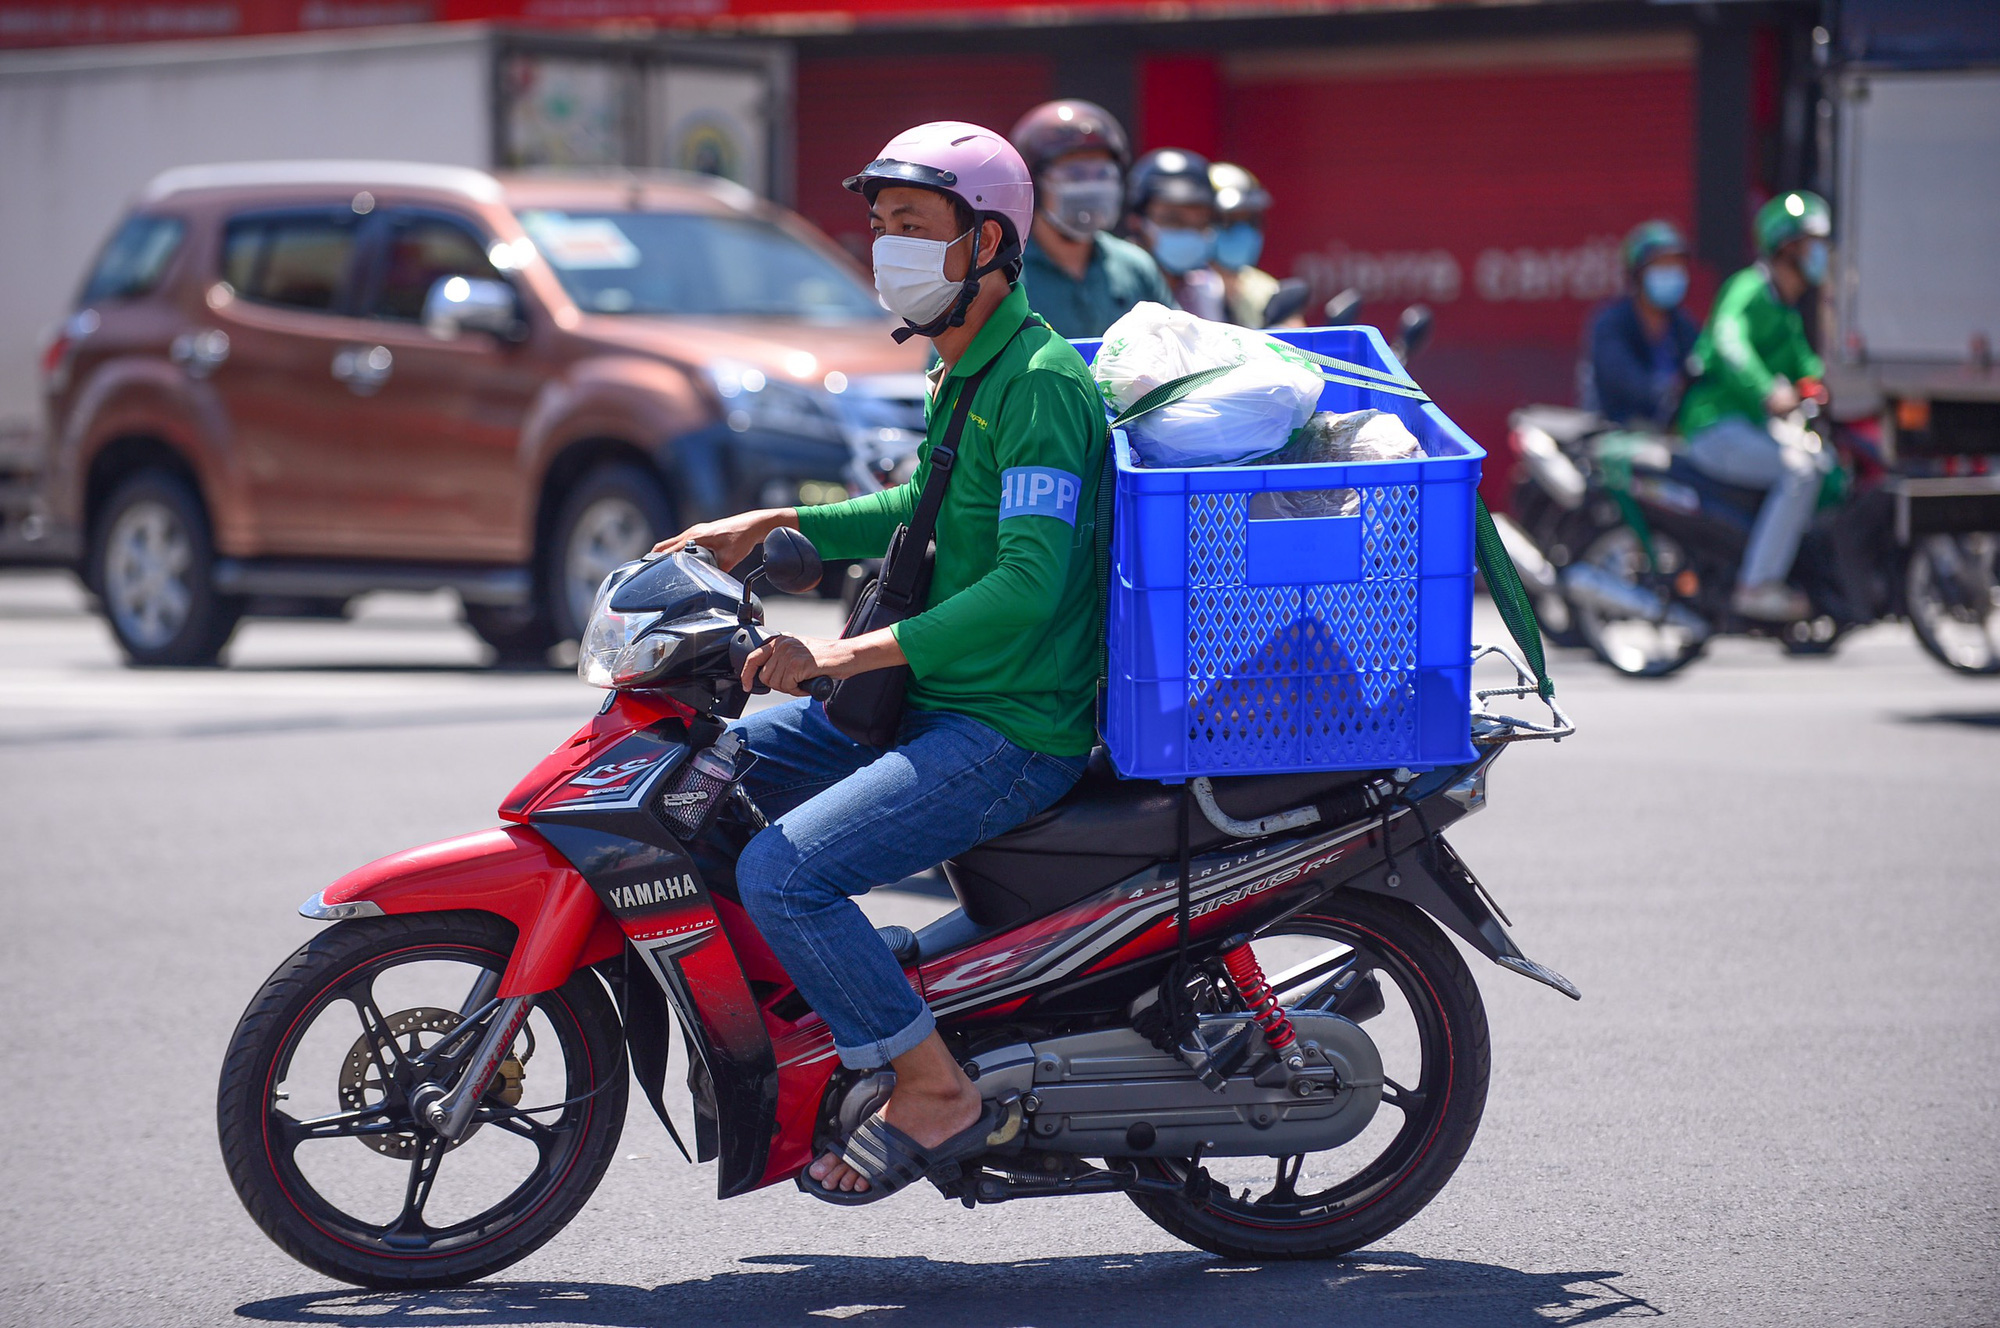 Delivery workers resume operation in Ho Chi Minh City's high-risk districts